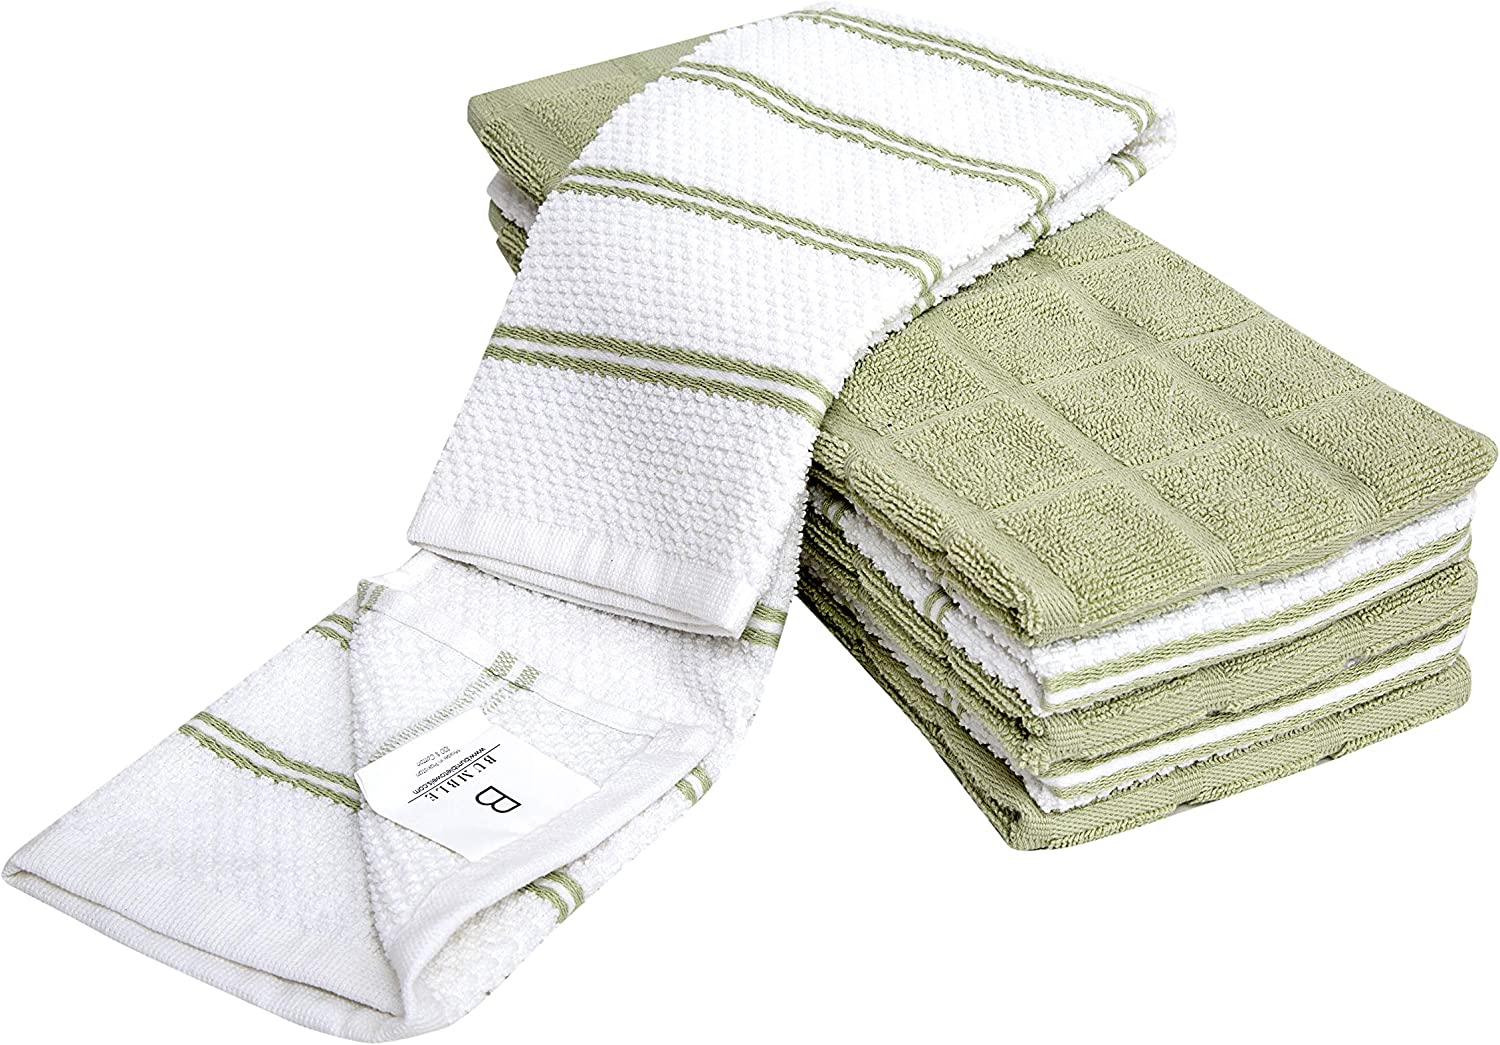 """6 Pack XL Popcorn Grid Kitchen Towel Set / 16"""" x 28""""/ Thick, Plush 100% Ring-Spun Cotton / 3 Yarn Dyed, 3 Solid Dyed Variety Pack/Sage Luxury Hand Towels"""